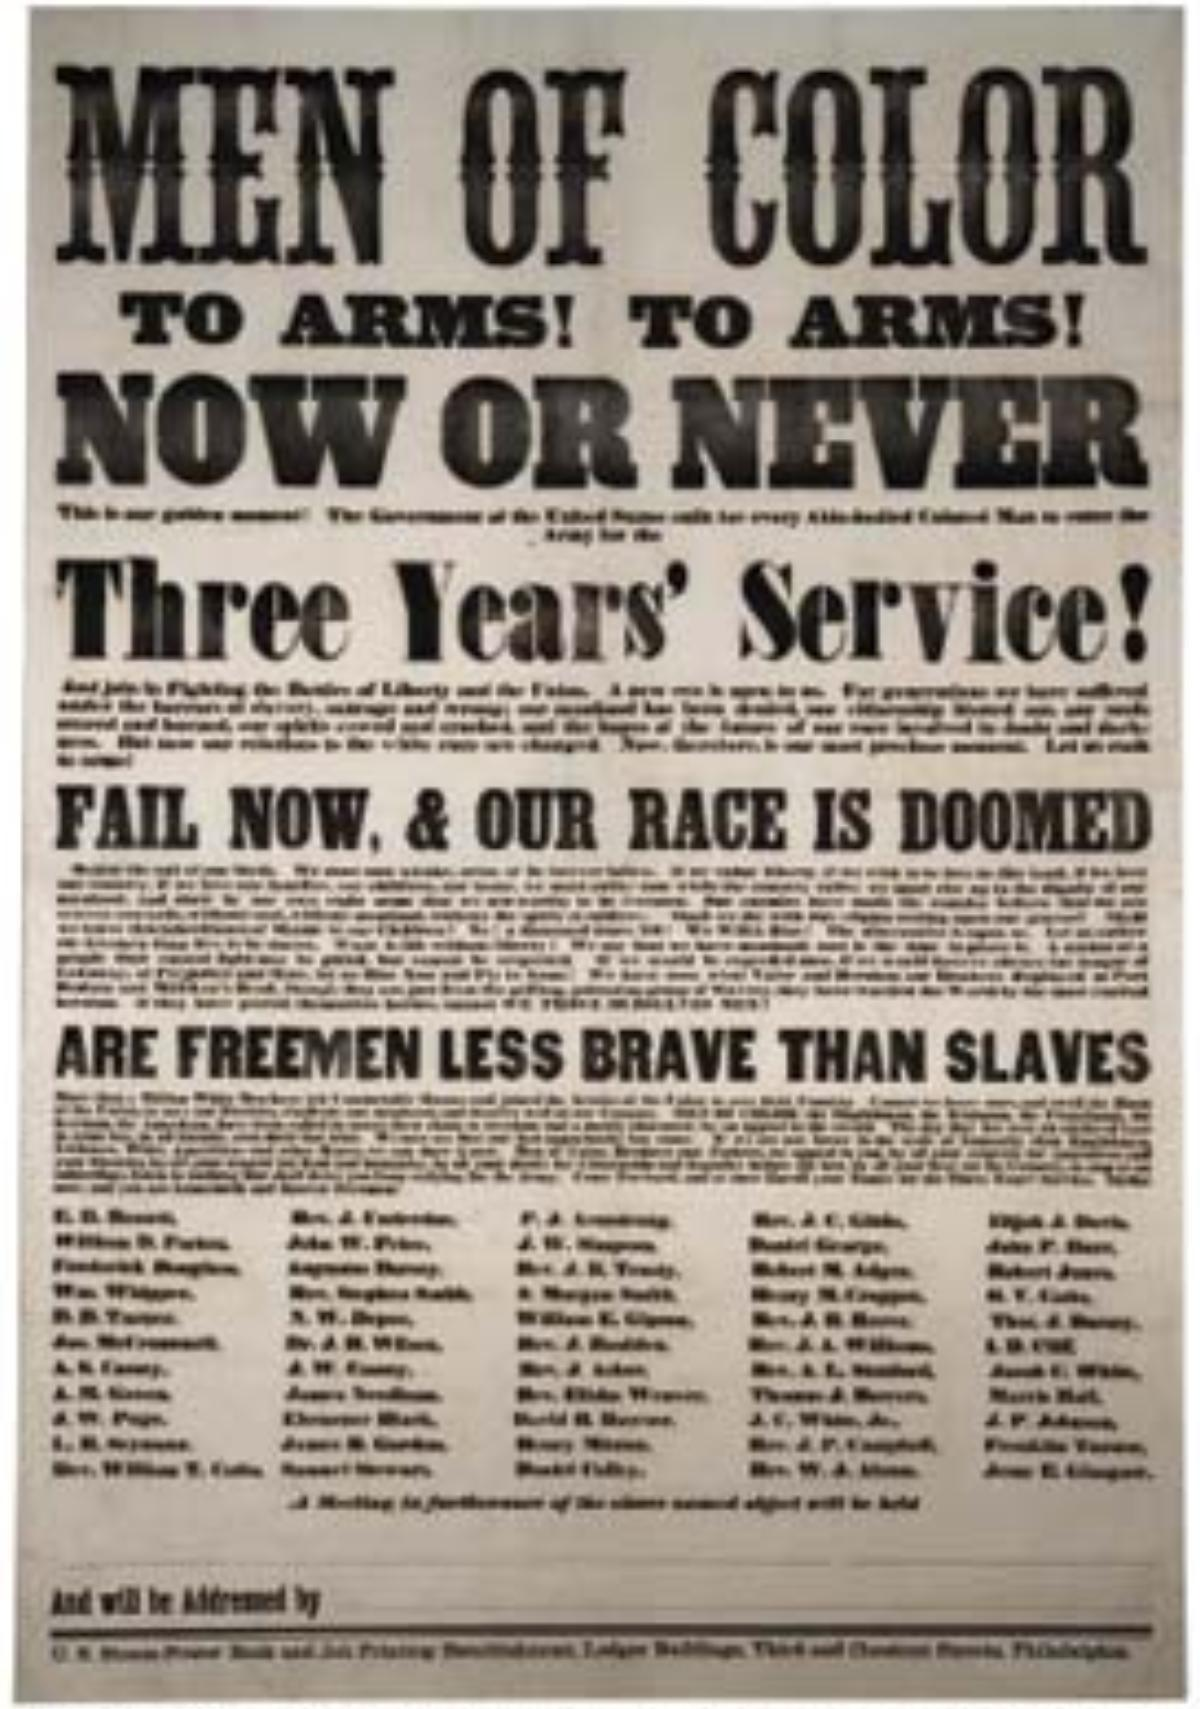 A recruiting poster for the USCT (United States Colored Troops).